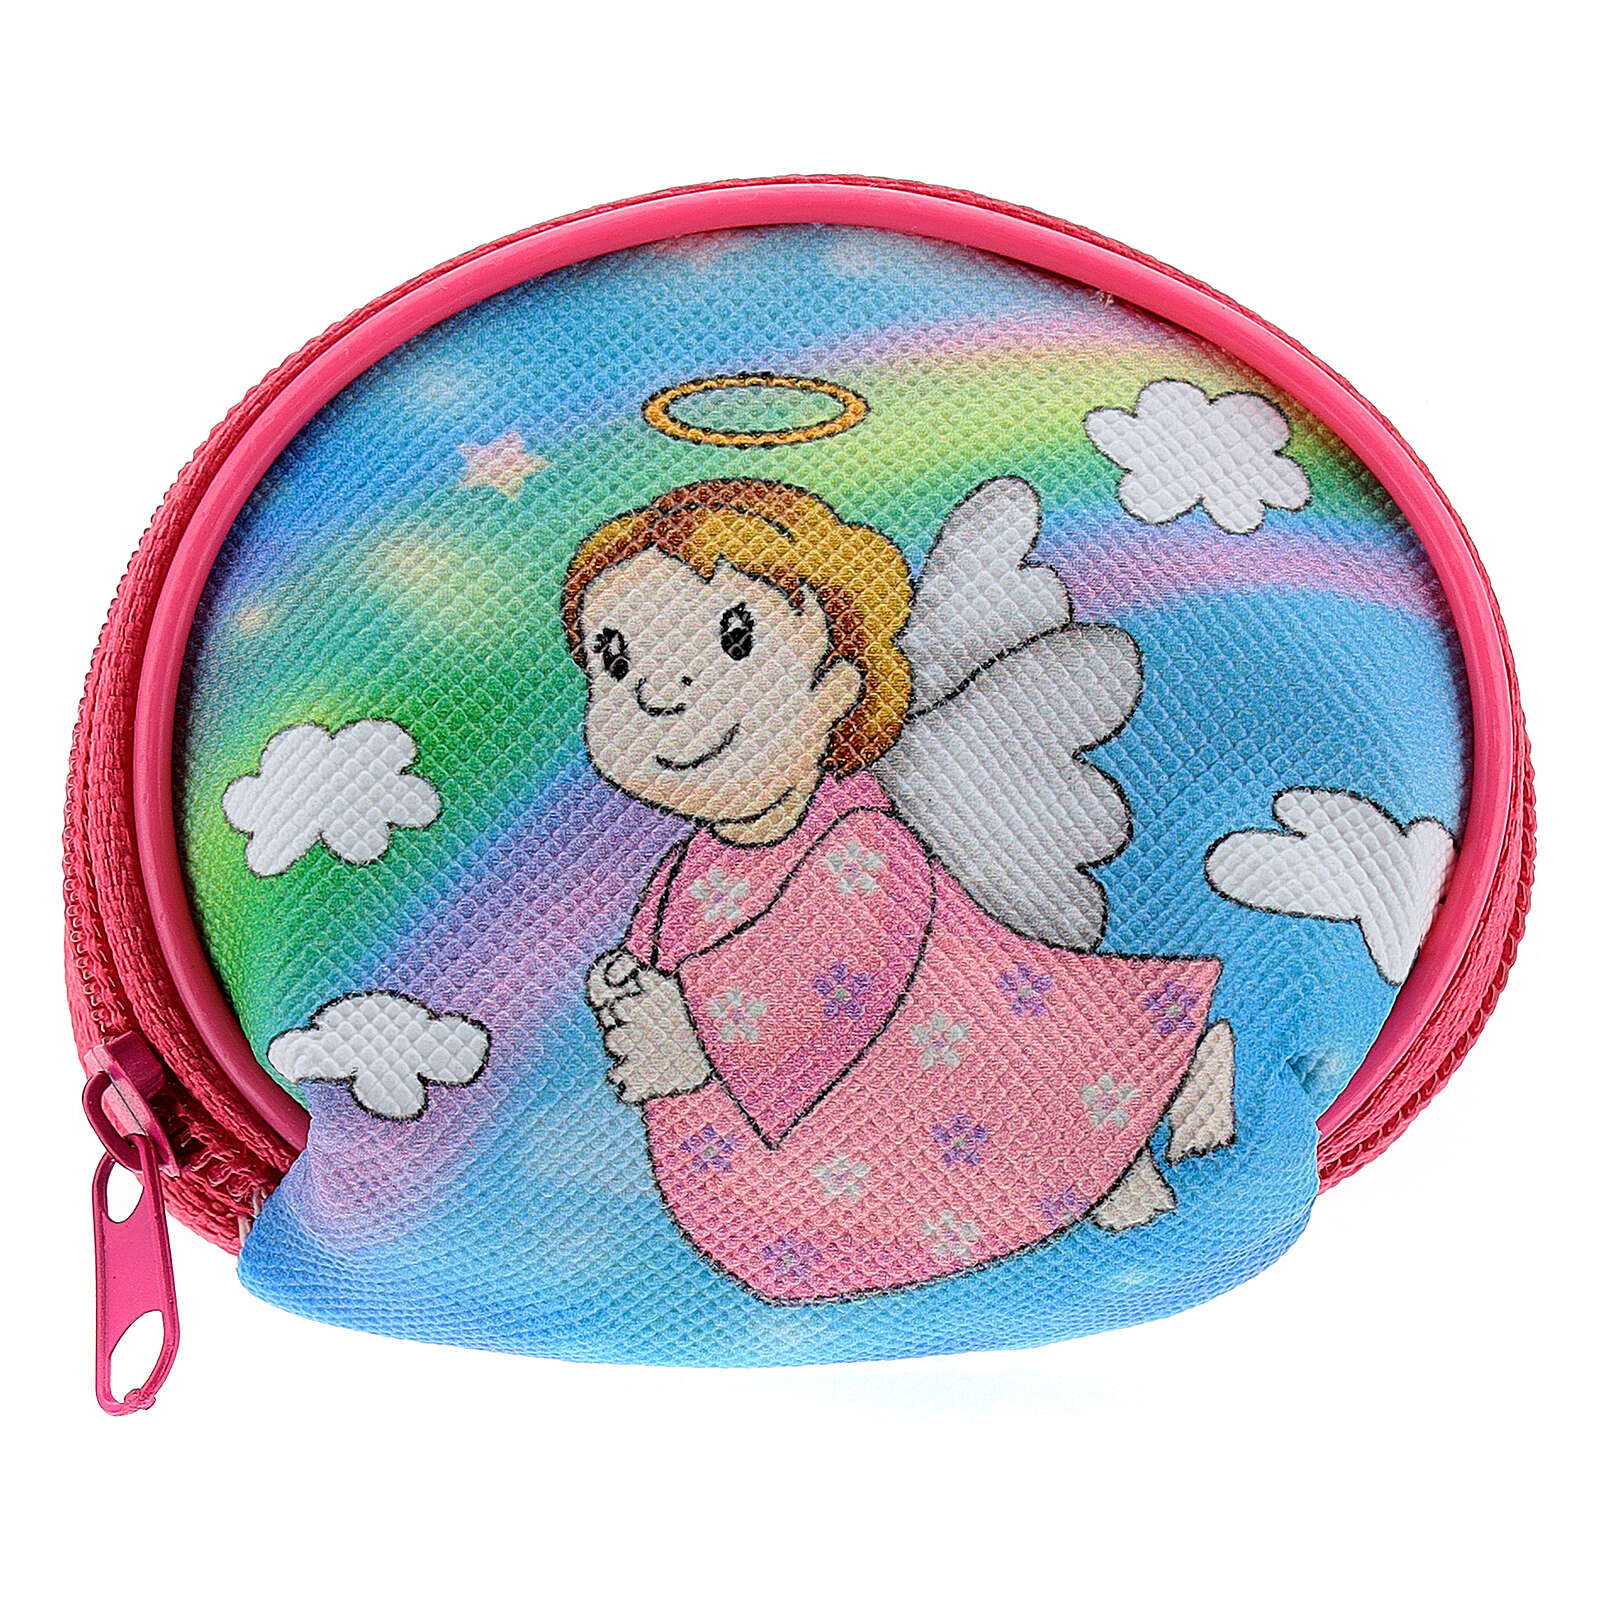 Purse rosary holder 7x6 cm with Angel dressed in pink image 4